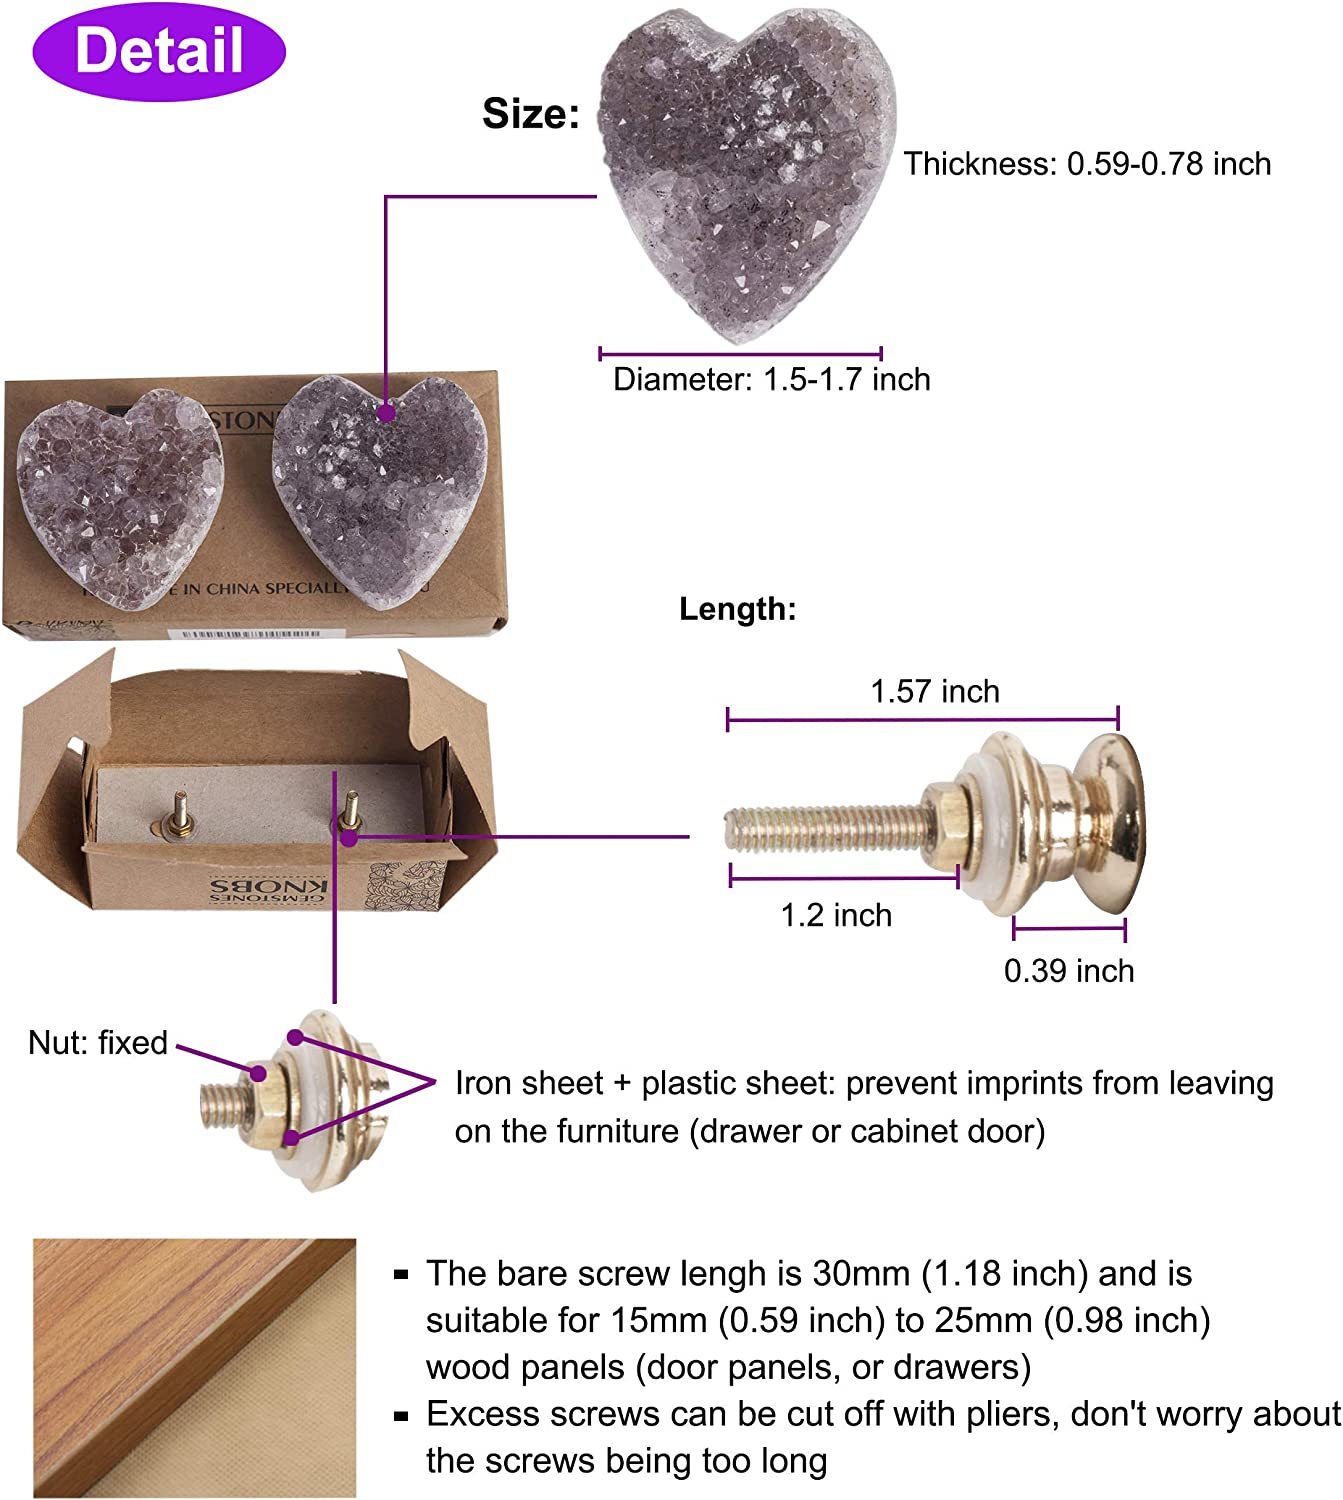 AMOYSTONE 2pcs Amethyst Drawer Knobs Pulls Handle Purple for Decorative Dressers Drawer Kitchen Cabinet Door 1.5